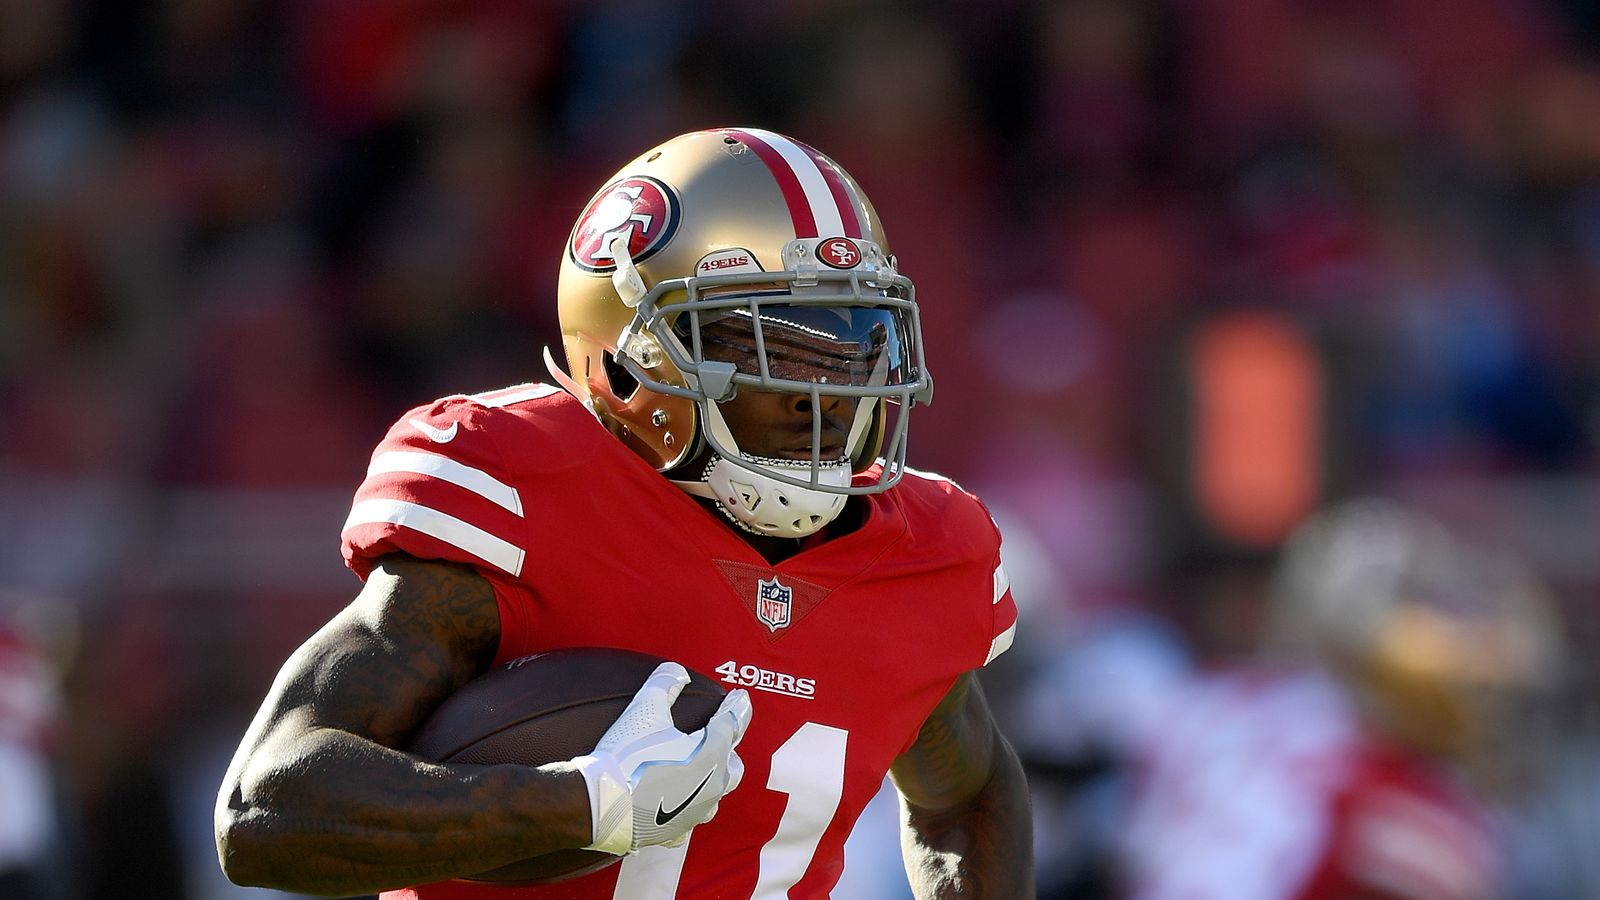 49ers reportedly sign marquise goodwin to 3